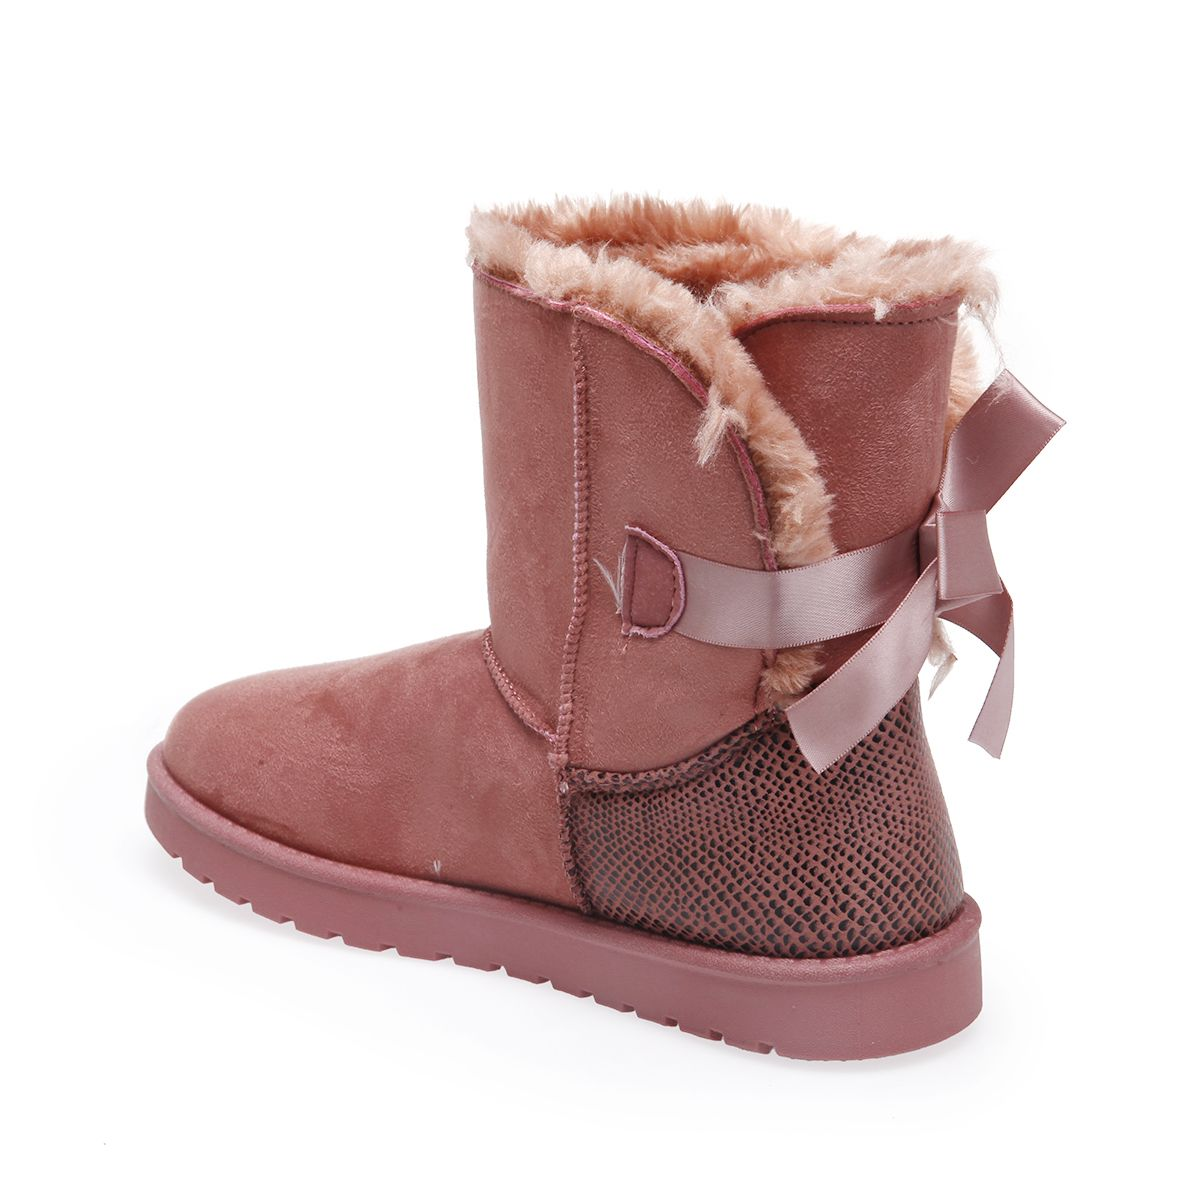 Uggs Global Affairs Derriere Avec Of Fausse Noeuf Division PqdP1B